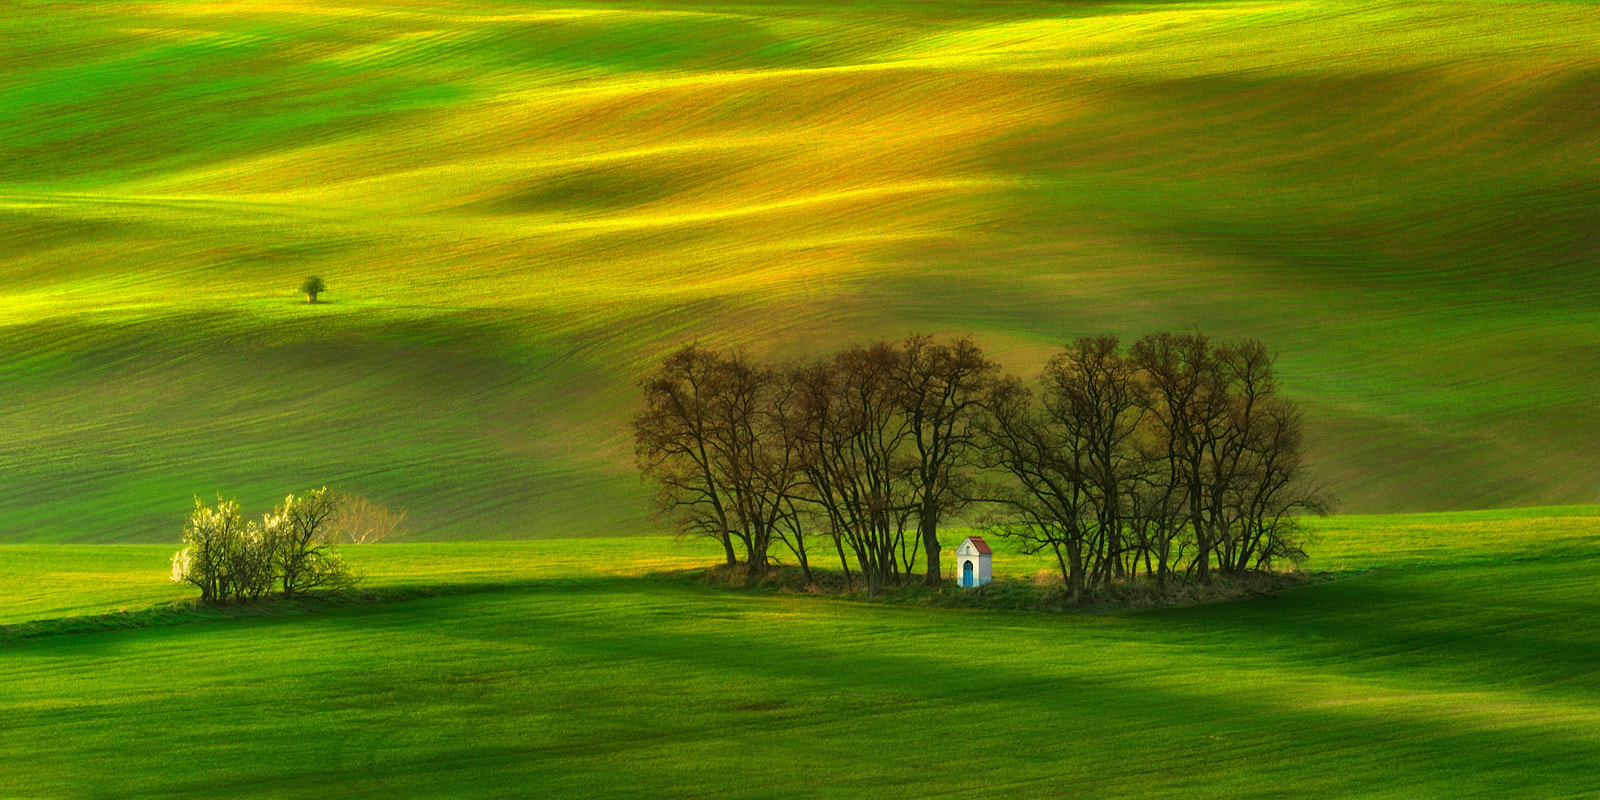 Photograph In the whole symbiosis... by Pawel Kucharski on 500px